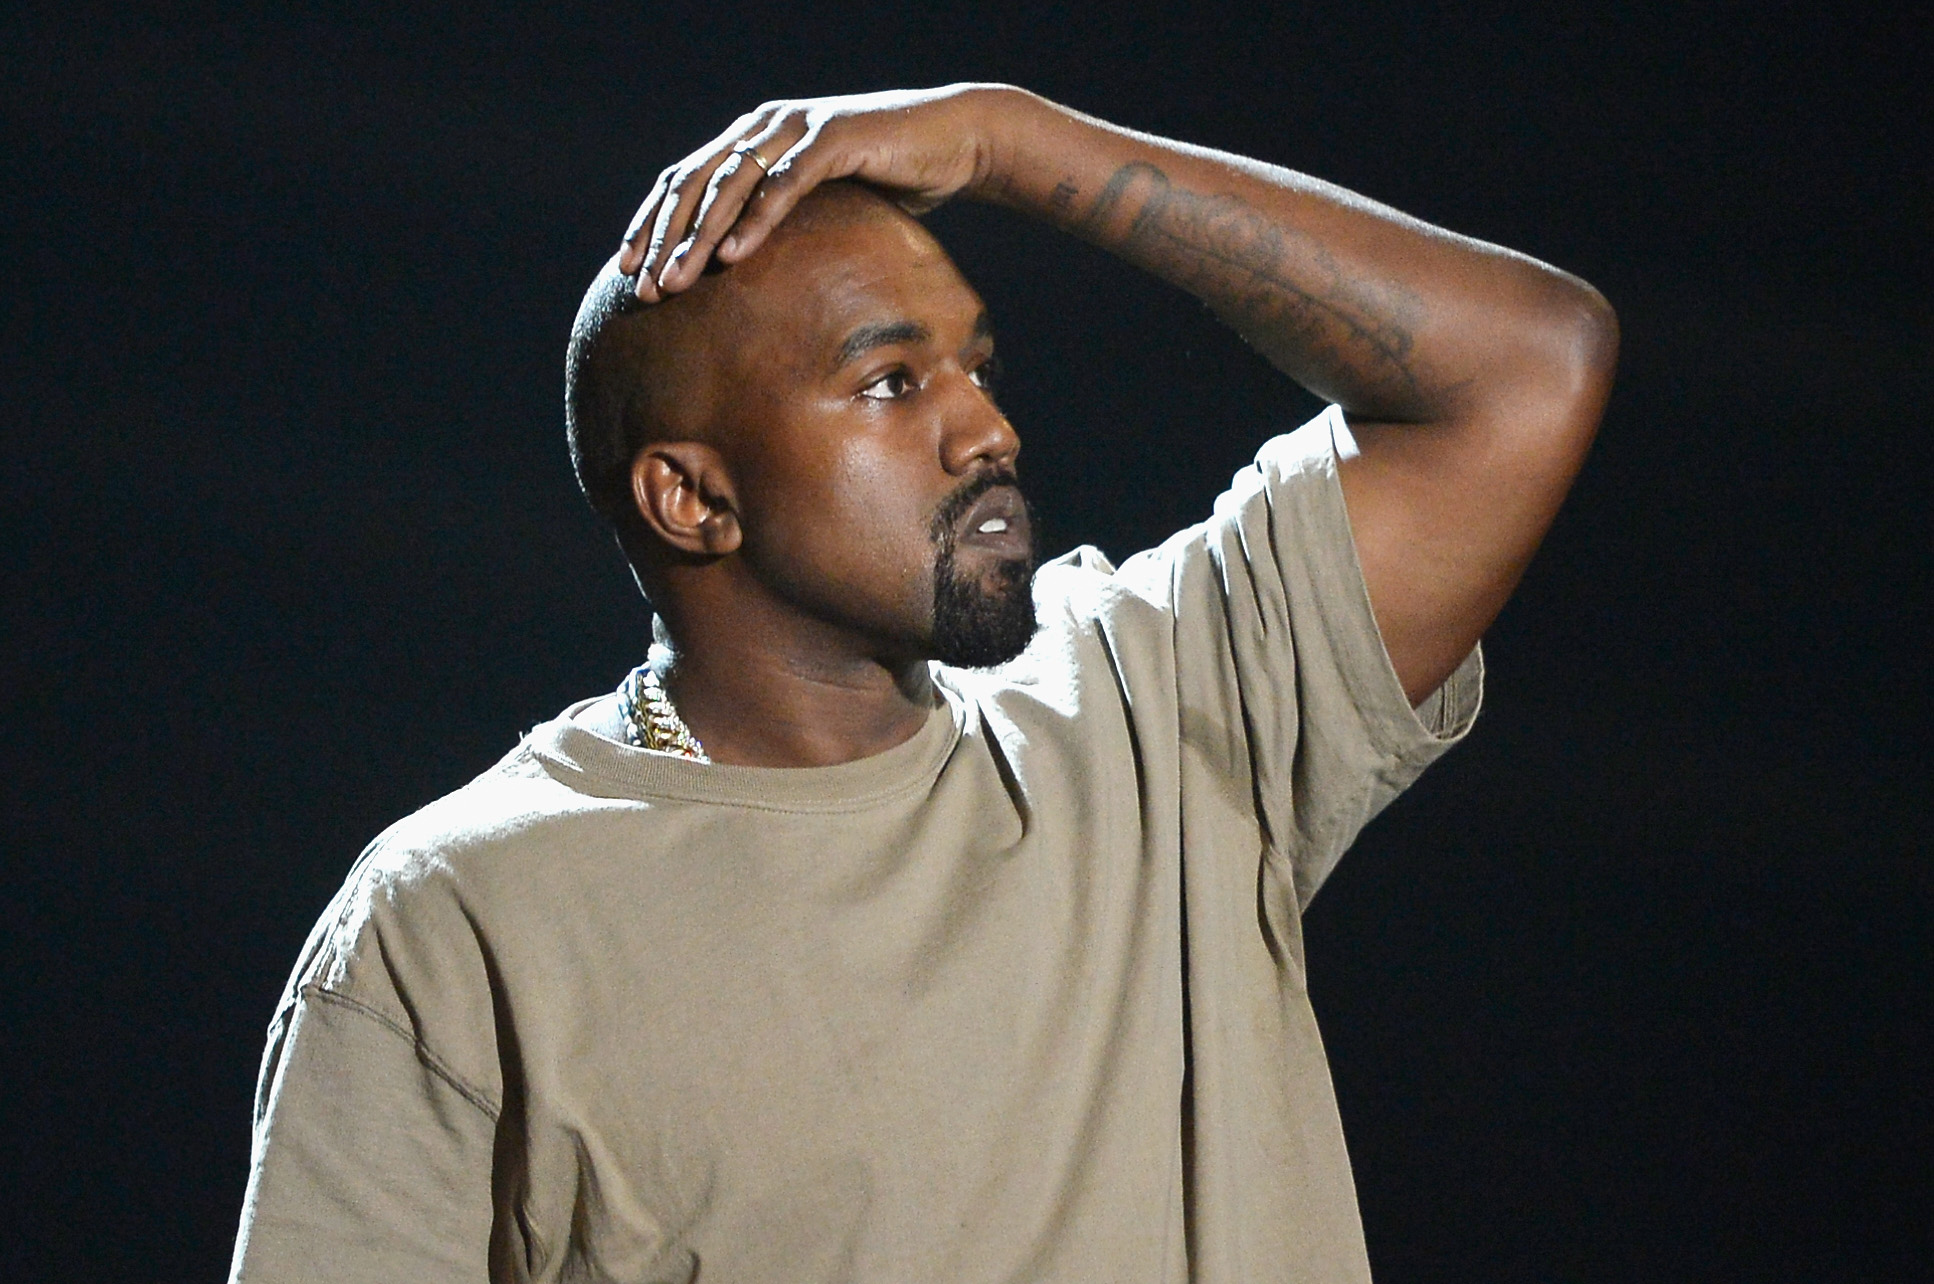 Kanye West pauses for a moment in his VMA Vanguard Award acceptance speech.